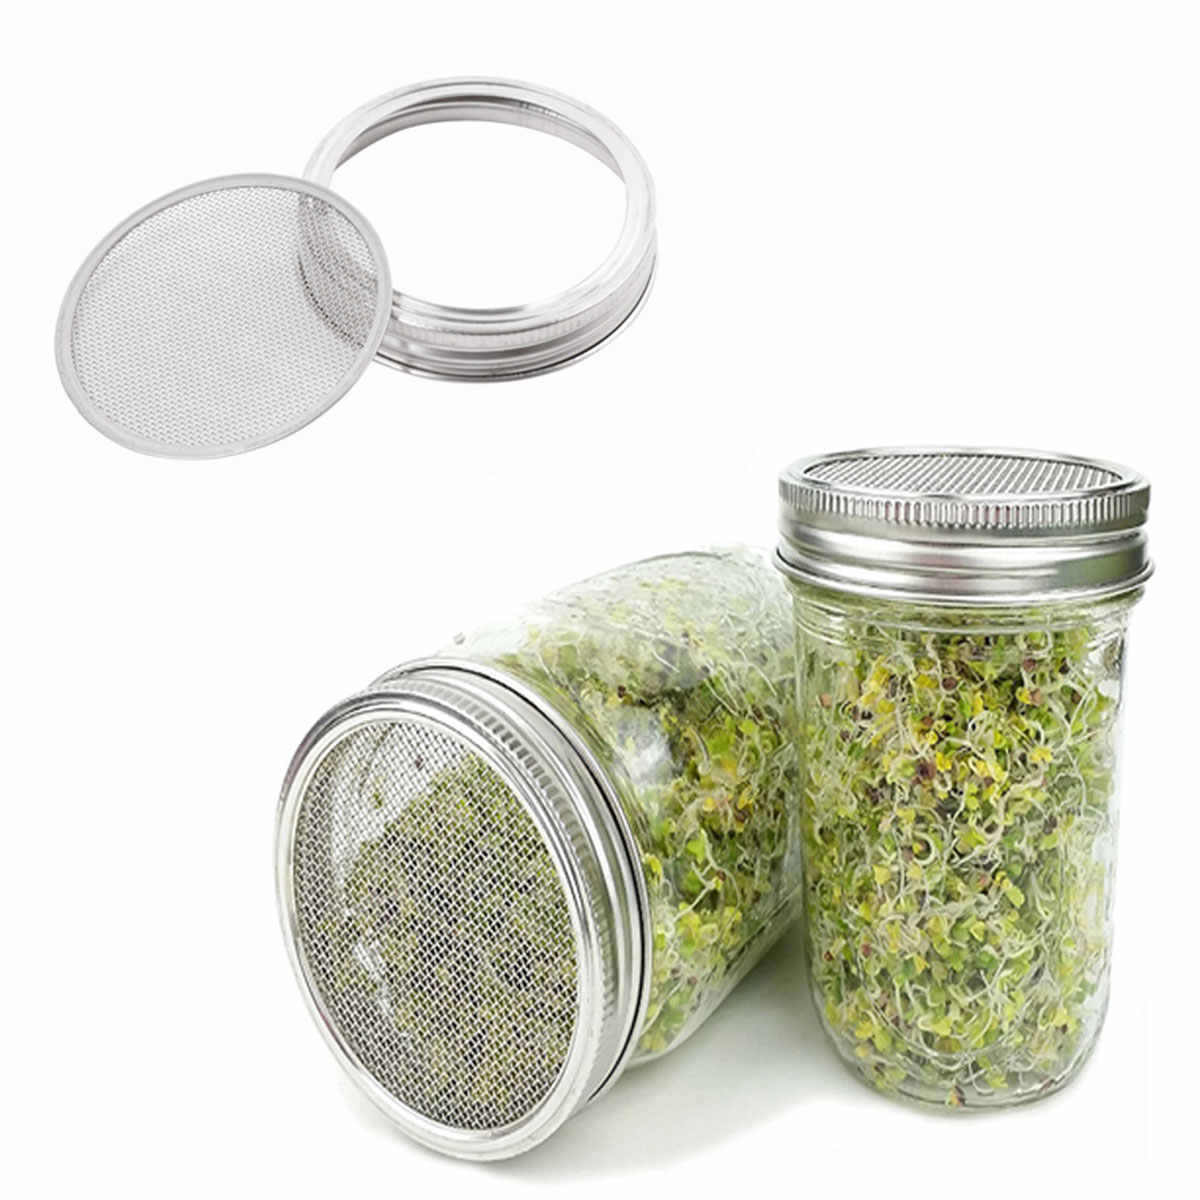 5Pcs Seed Sprouting Lids Strainer Canning Mason Jars Mesh Lid Filter Stainless Steel Screen Filters to Sift Flour Powdered Sugar